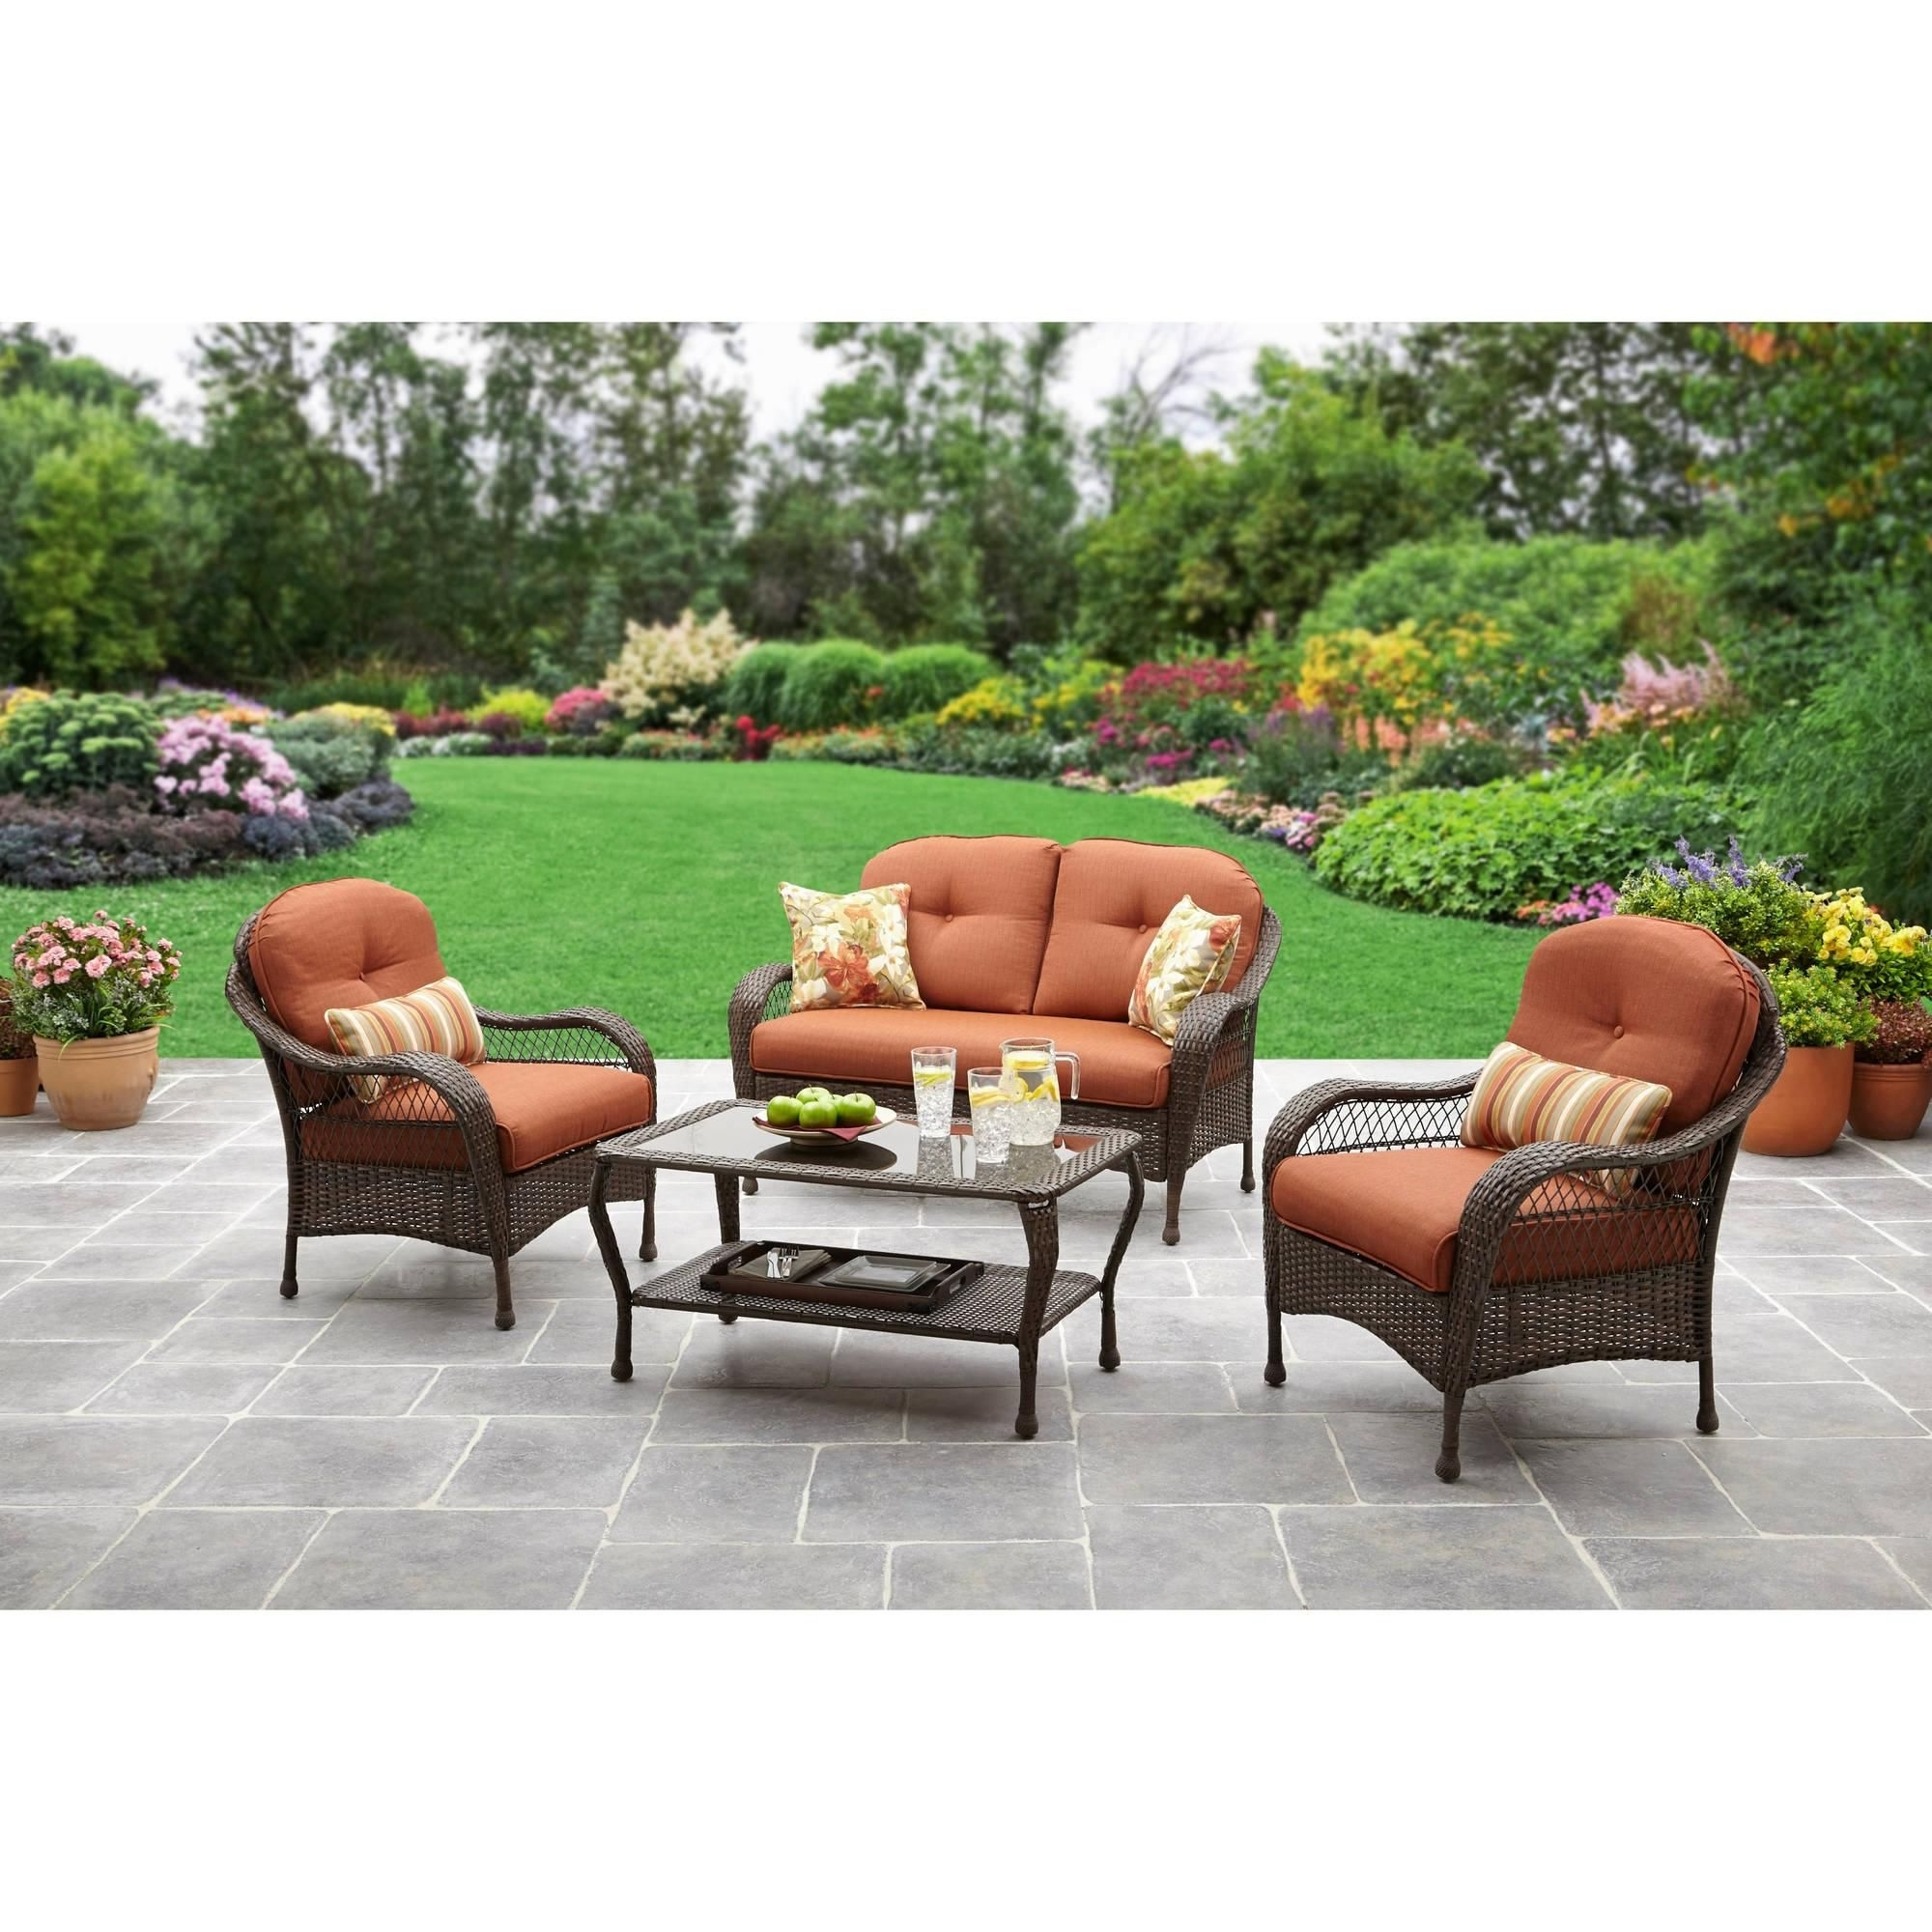 Popular Patio Conversation Sets At Walmart Pertaining To Replacement Cushions For Outdoor Furniture Walmart – Best Spray (View 13 of 15)